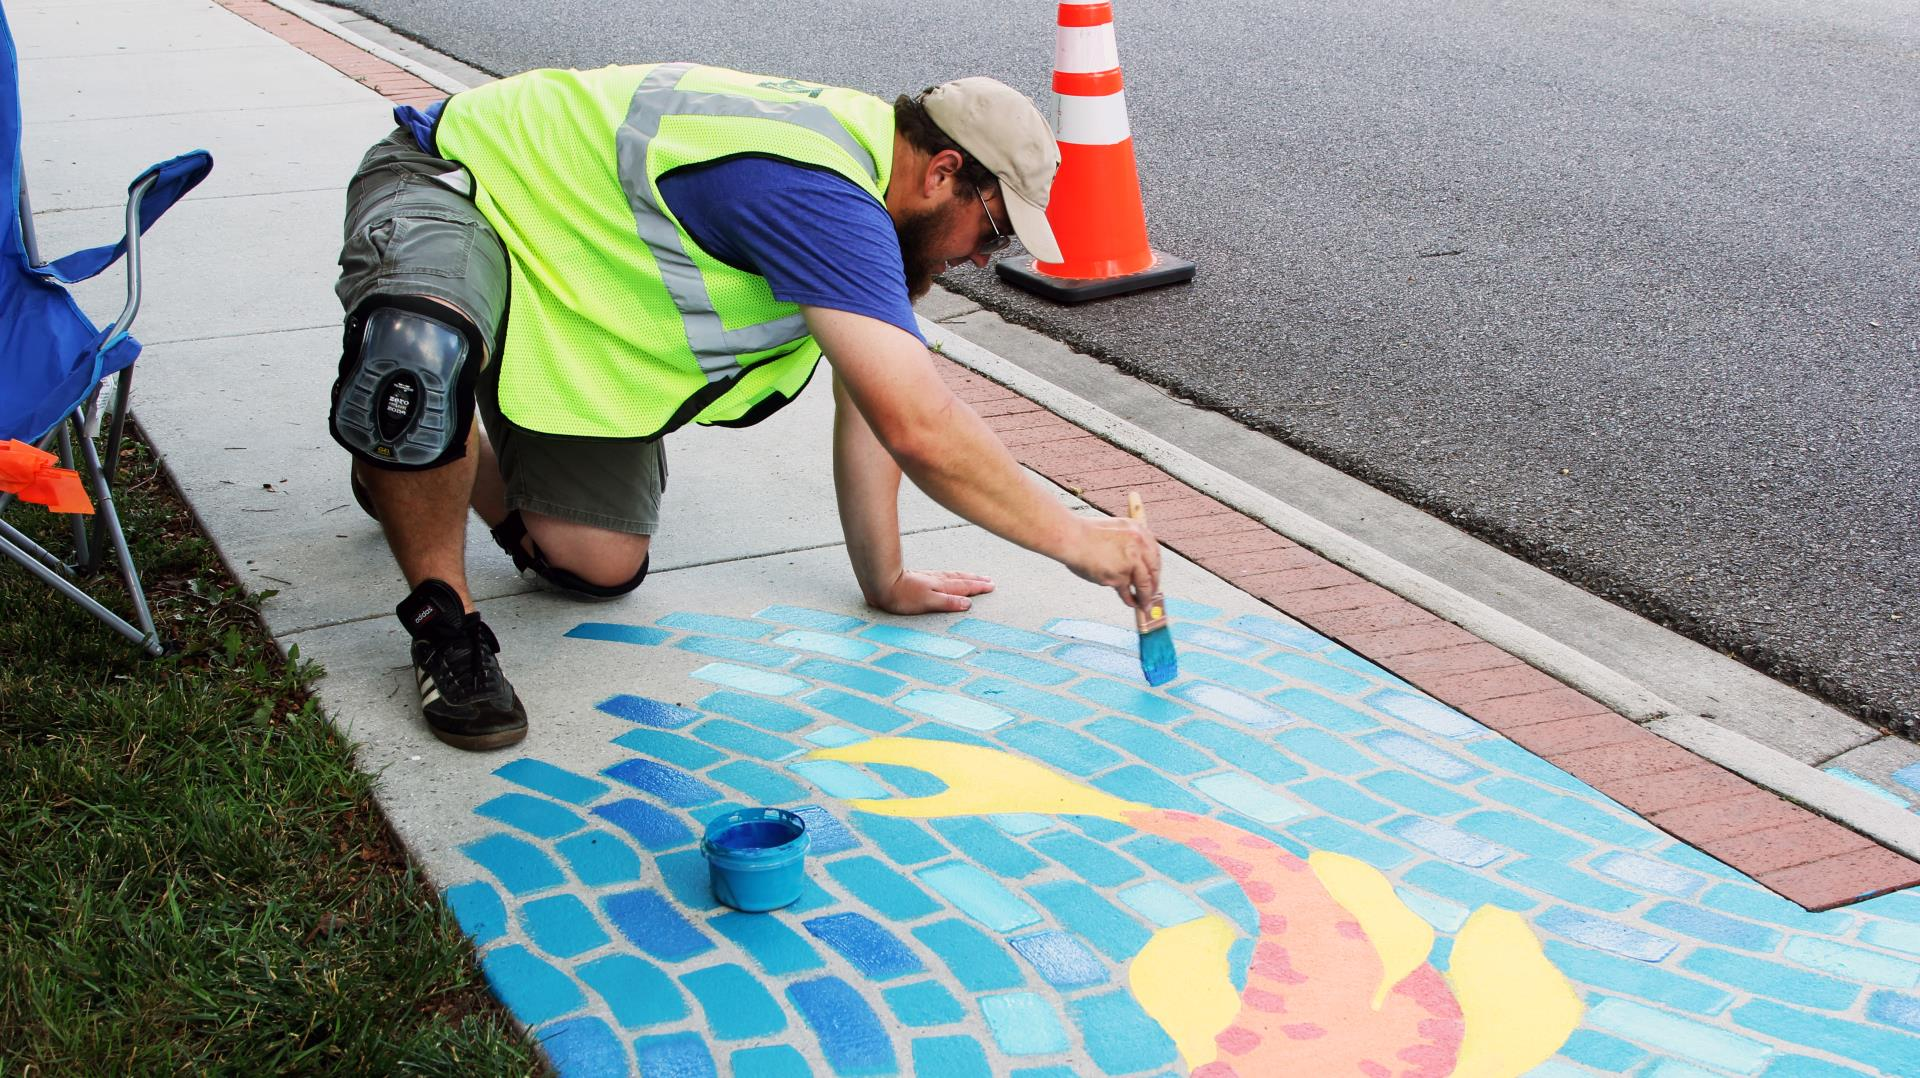 Michael St Germain painting his stormwater arts project on Clay Street